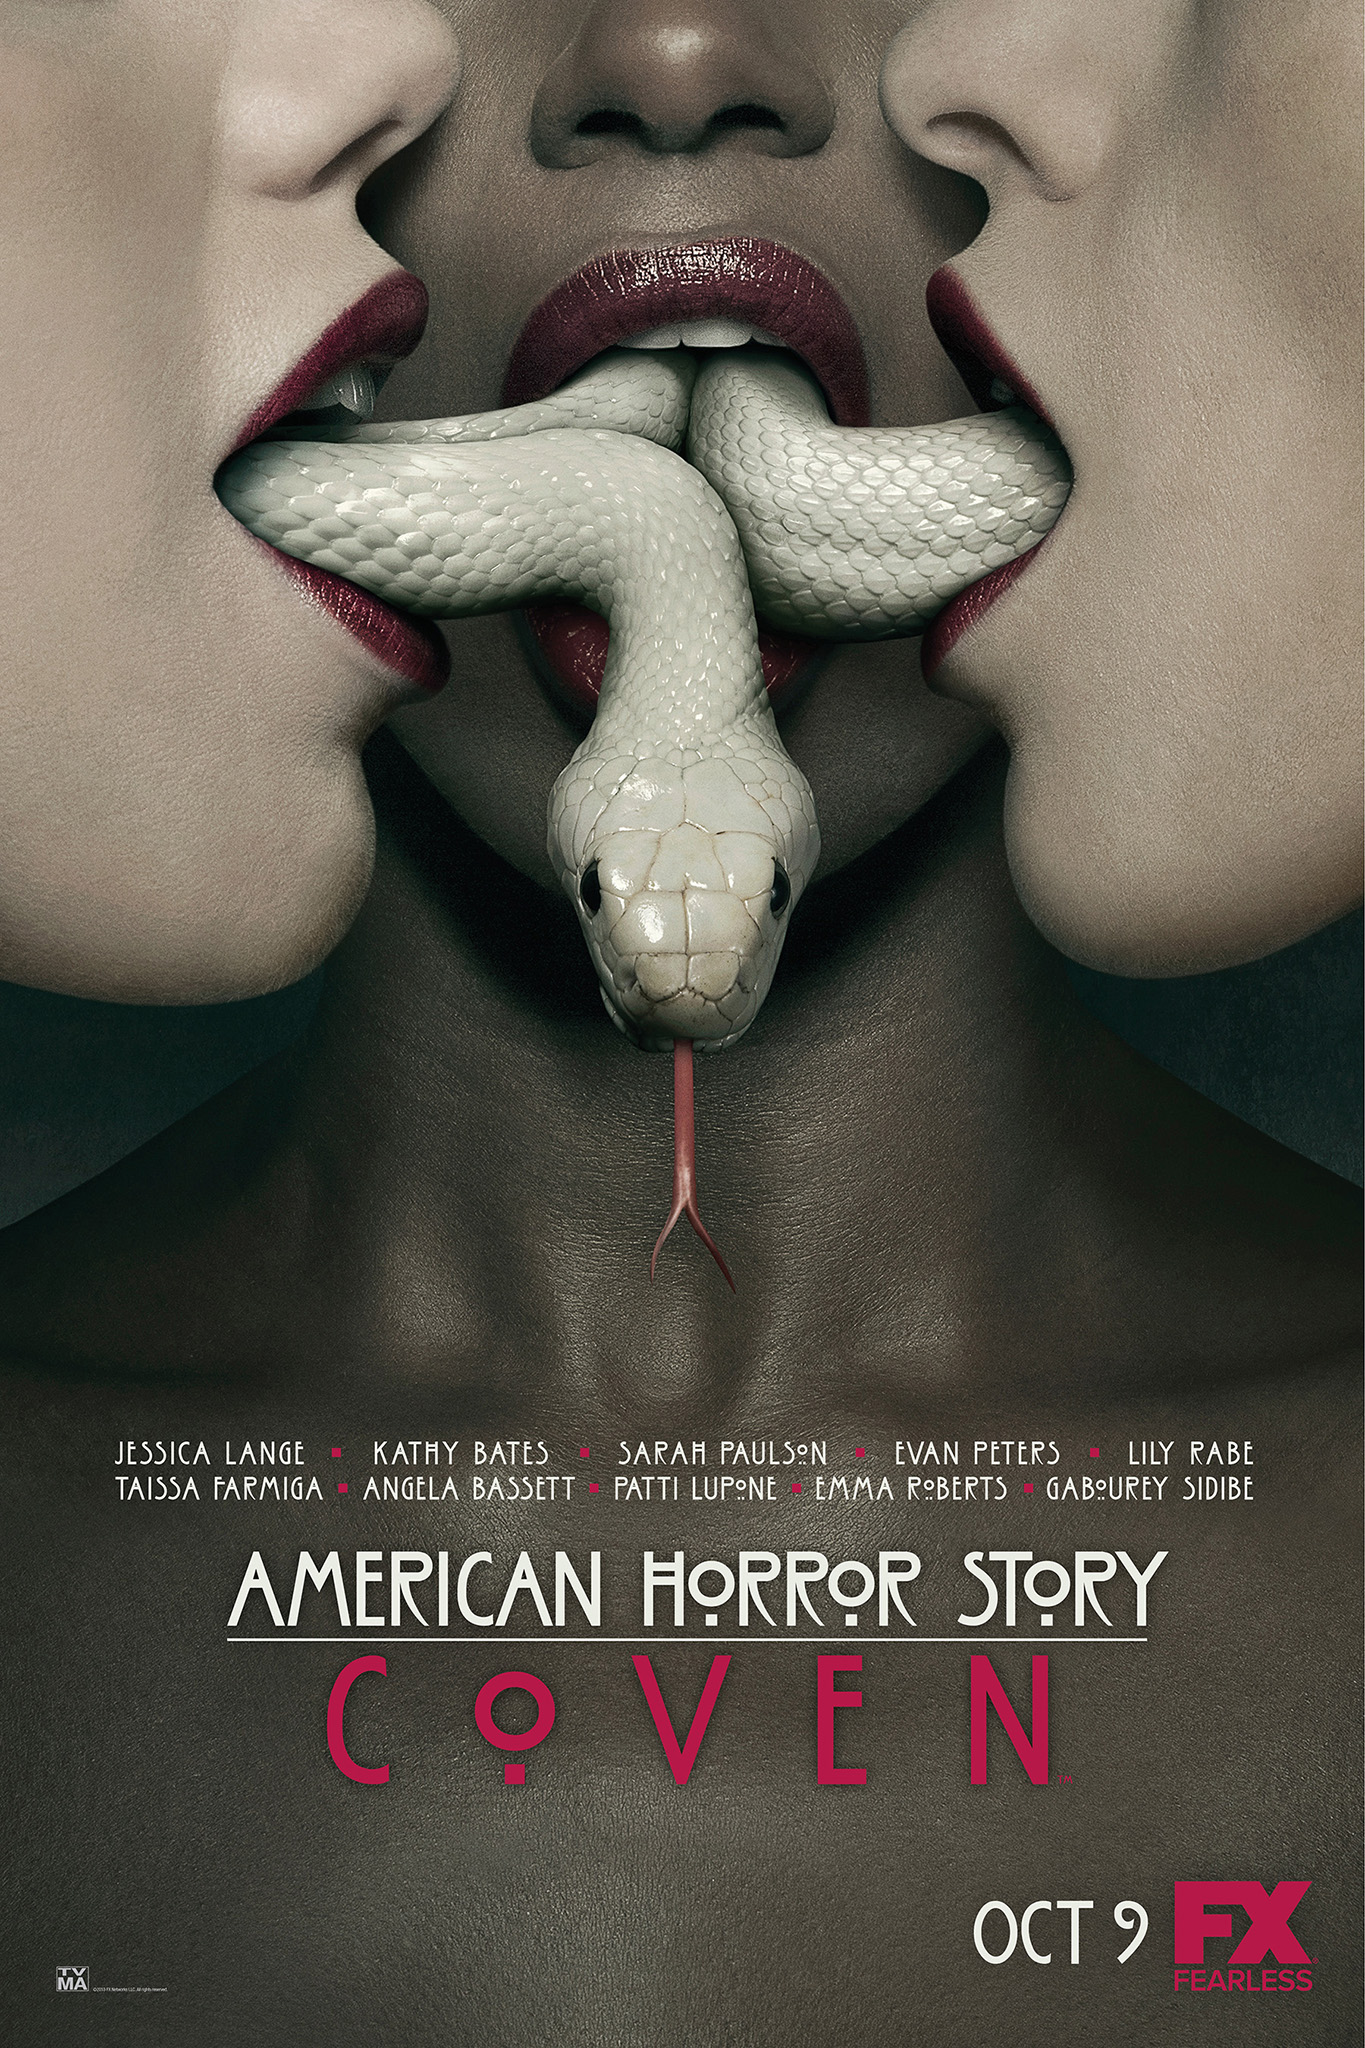 3 Girls and a Snake Grace the 'American Horror Story: Coven' Poster